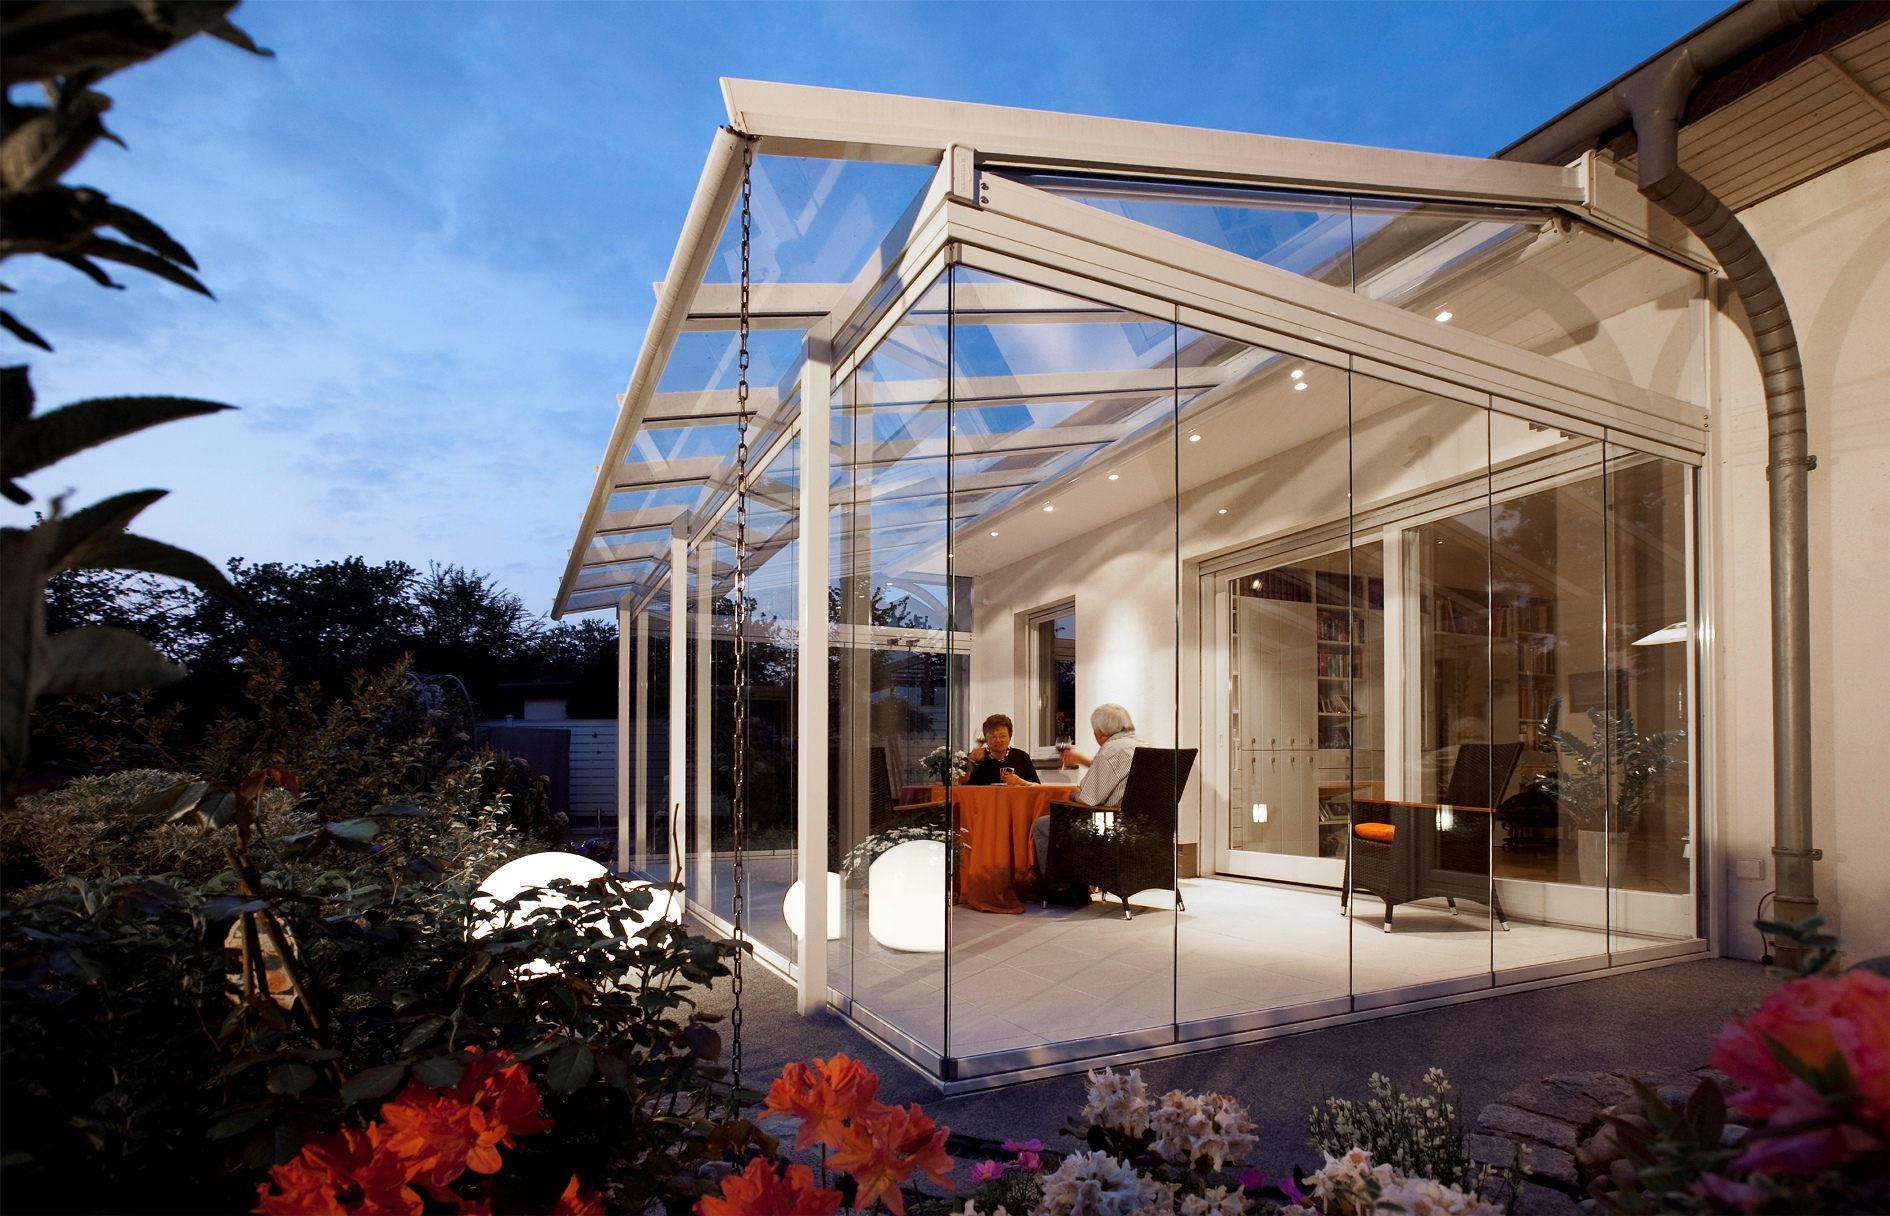 Nanawall systems launches nanaglass sl25 at greenbuild for Opening glass walls